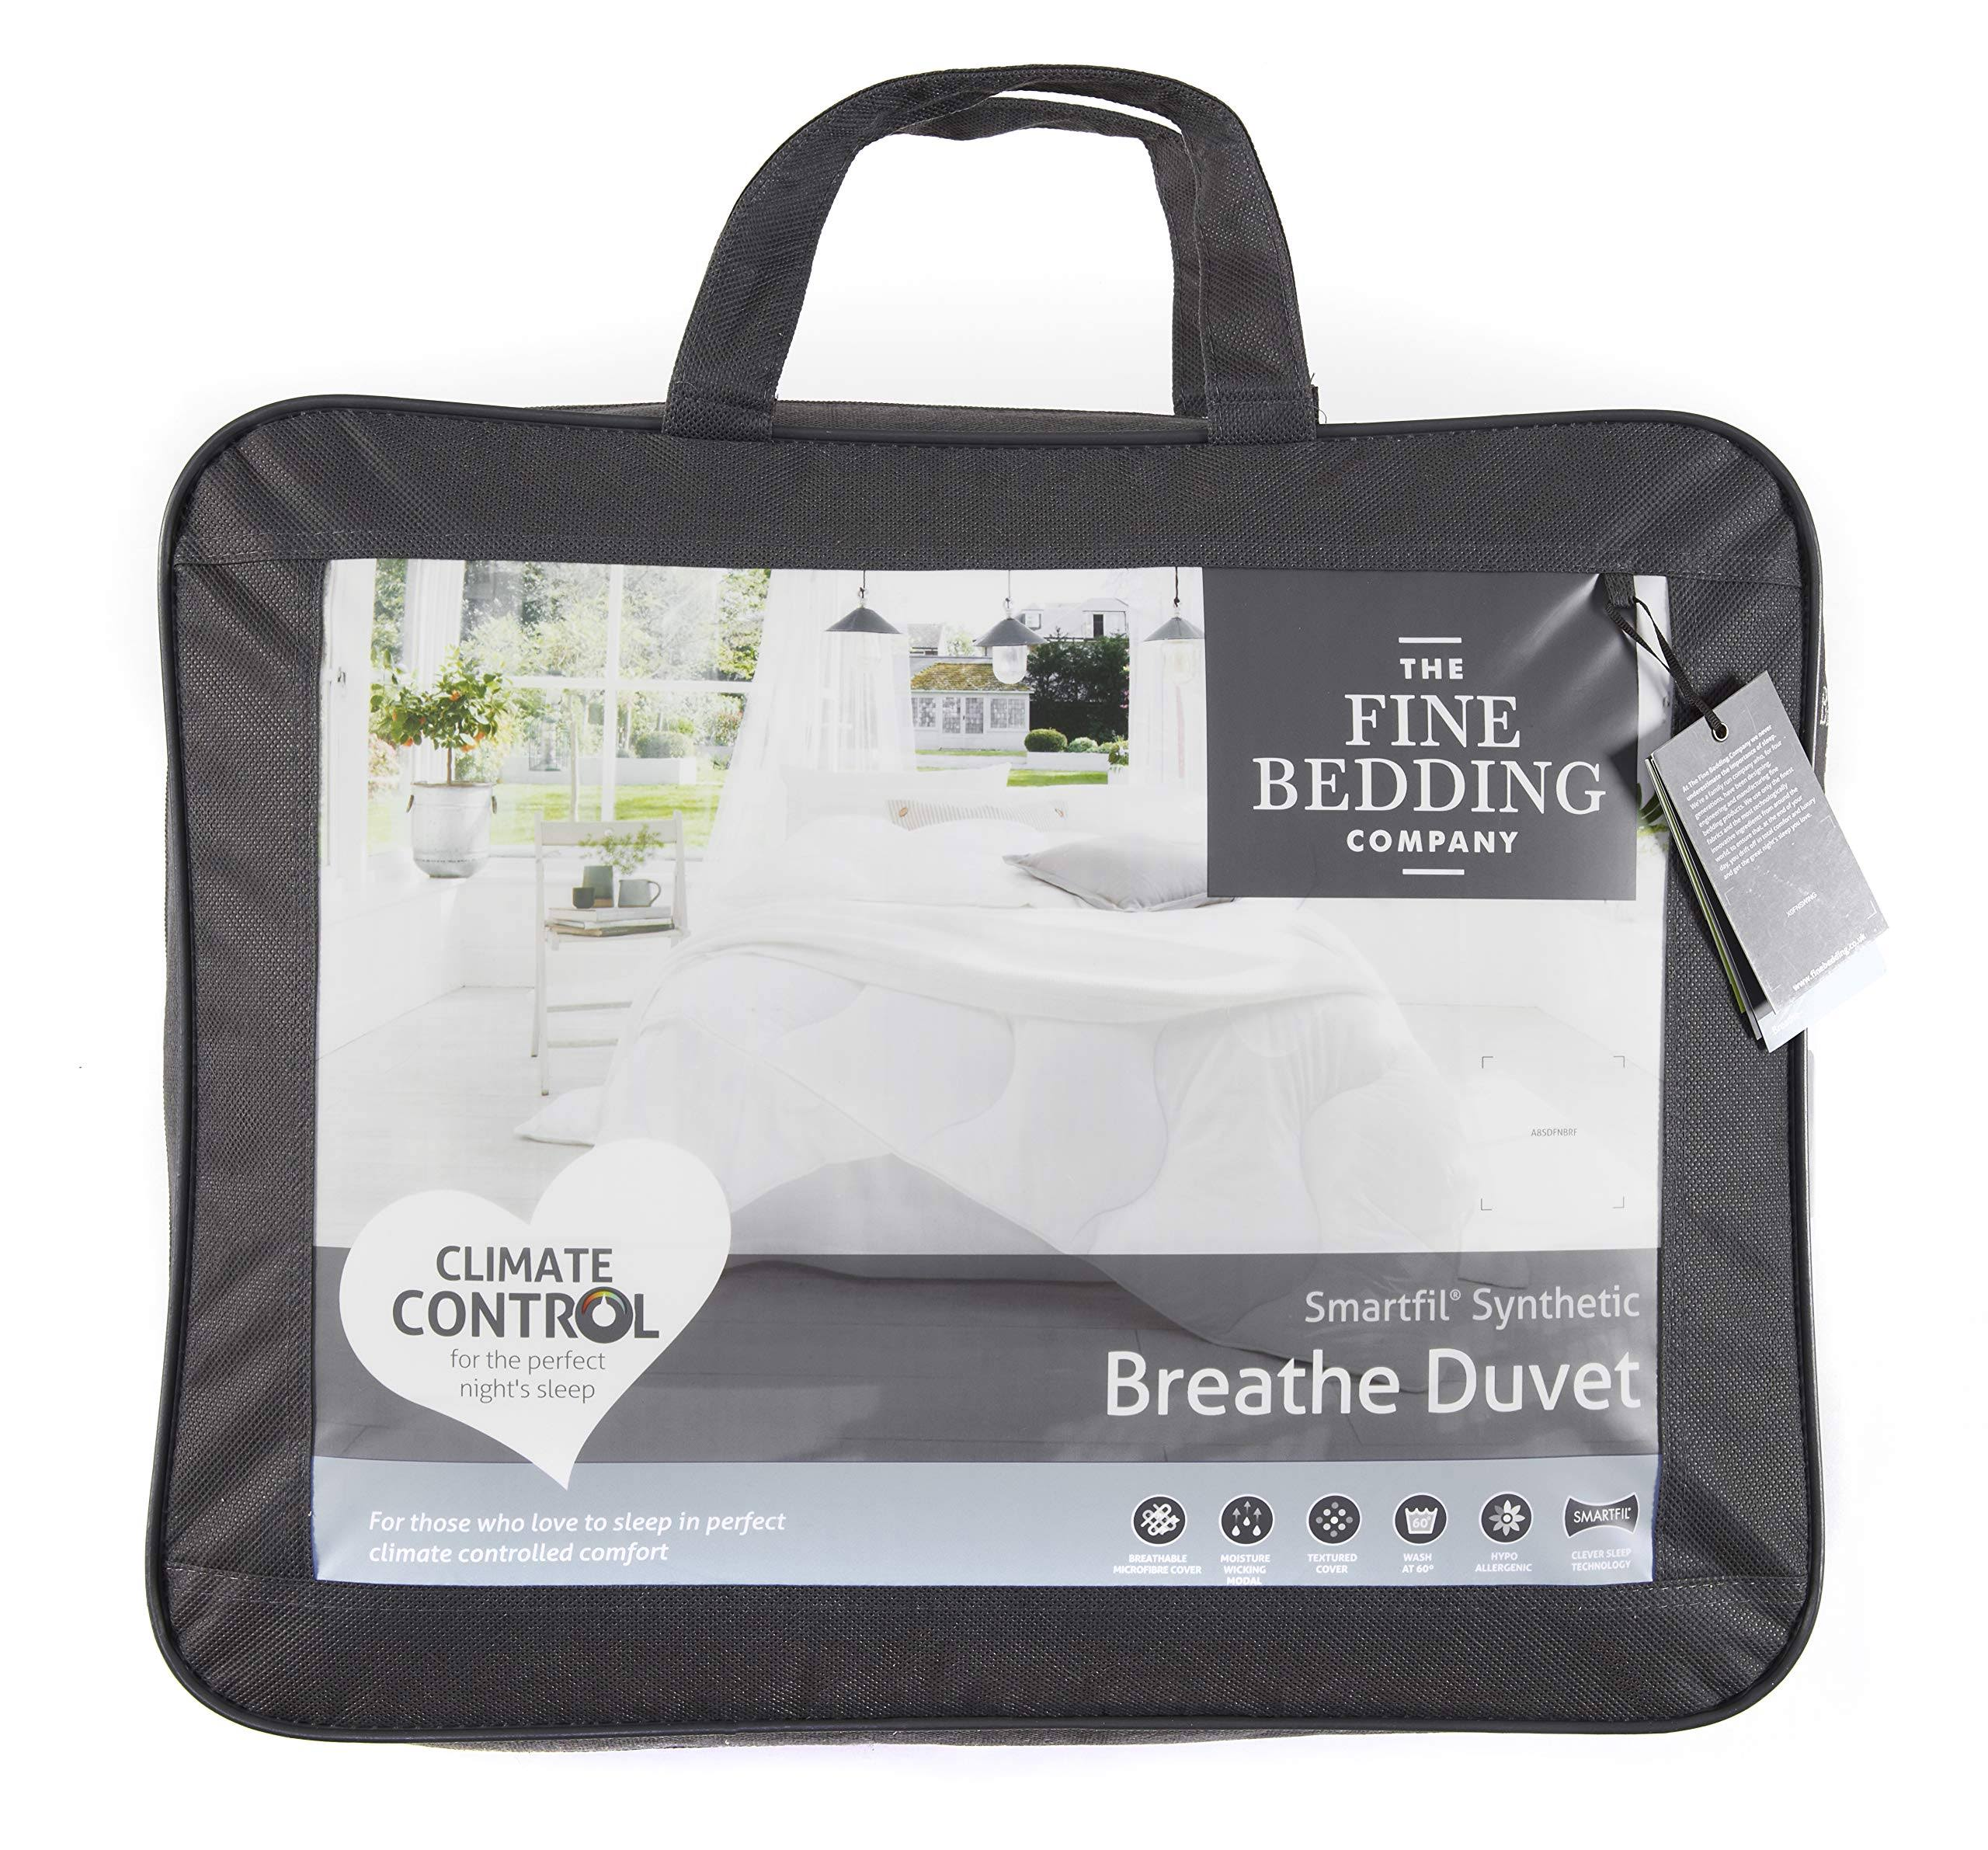 The Fine Bedding Company Breathe Duvet